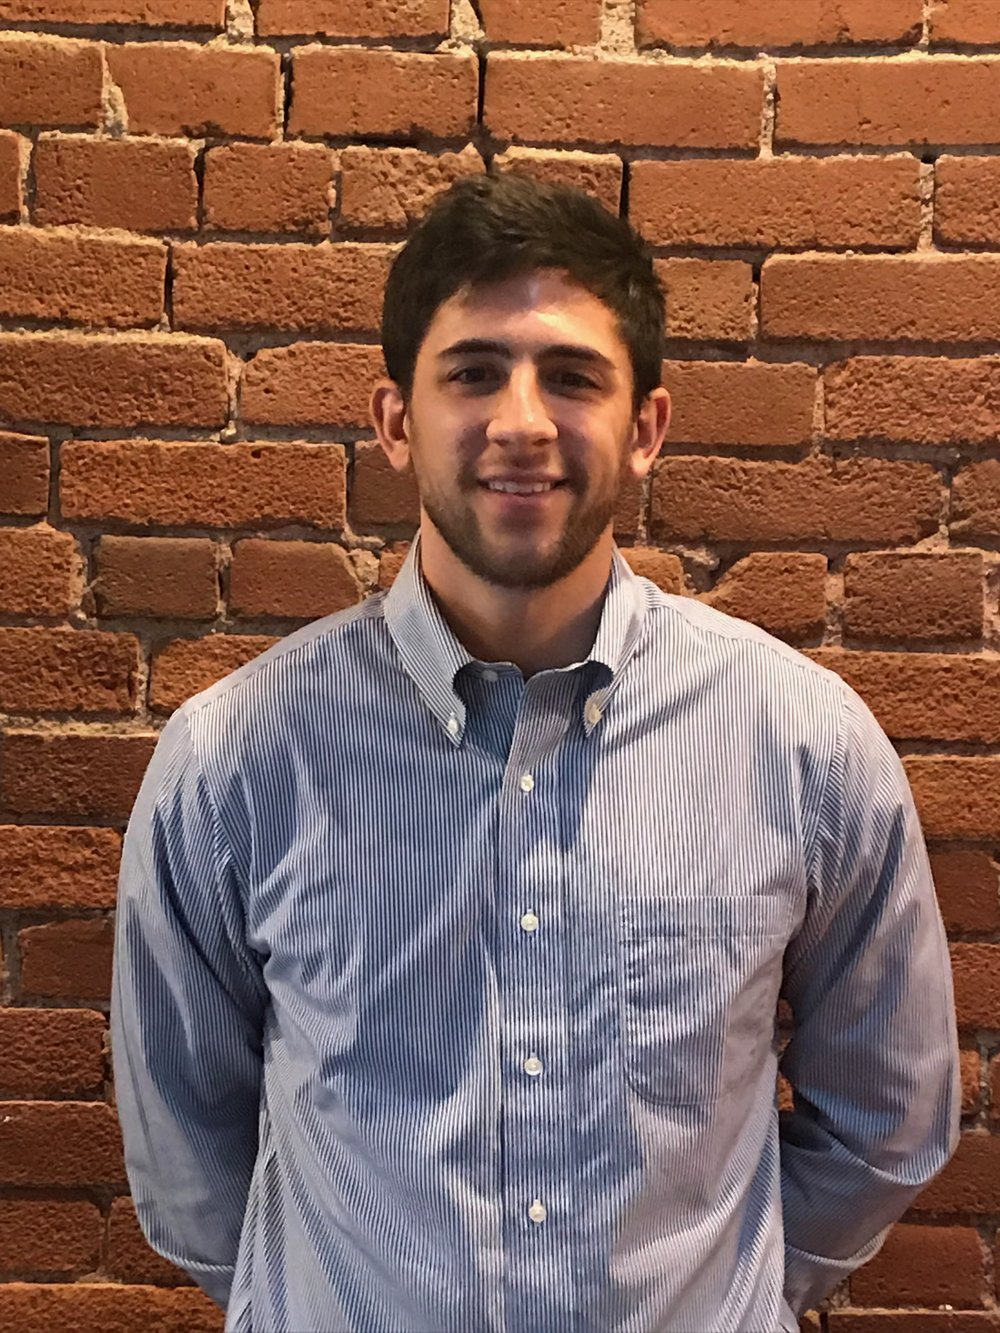 Paul is a 2017 graduate of Boston College with a degree in Mathematics, and he is currently enrolled in Pitt's Master of Science in Finance program. Through his masters program and his internship at GTE, Paul hopes to build his skill set and knowledge base for a career in financial services. He has a particular interest in investments, stemming from an internship at Integrated Capital Management, a boutique firm in Scranton, Pennsylvania, and would enjoy exploring this field further. At GTE, Paul is most excited about the opportunity to learn about the finer details of the process whereby OIRs discover value in a company and ultimately put a price on it. Outside of work and school, Paul likes running, reading, and going to concerts.